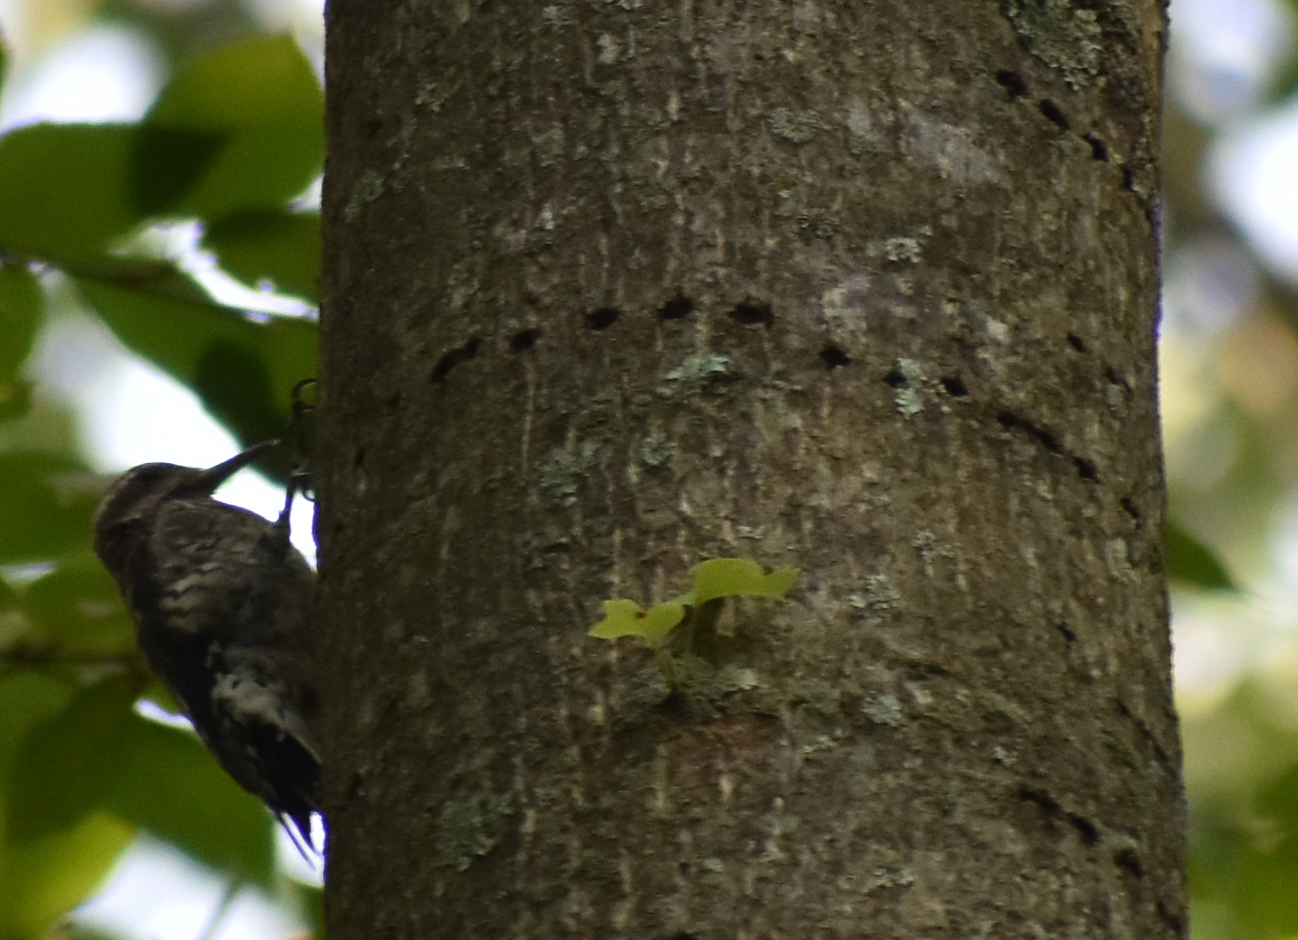 Yellow-Bellied Sapsucker drilling sapwells into Tulip-Poplar